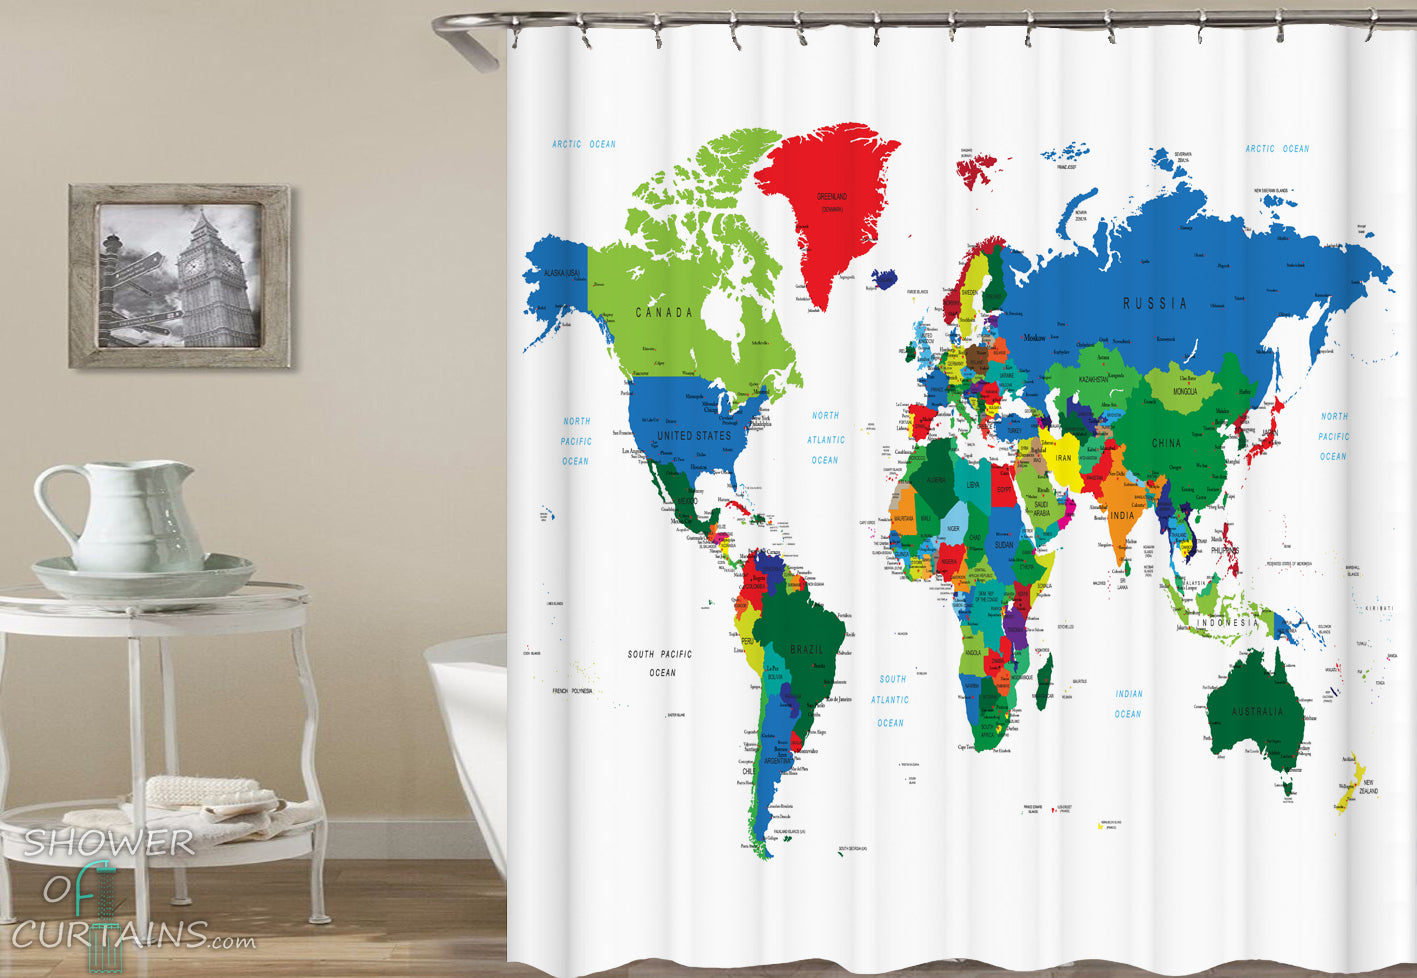 shower curtain map of world Shower Curtains Multi Colored World Map Shower Of Curtains